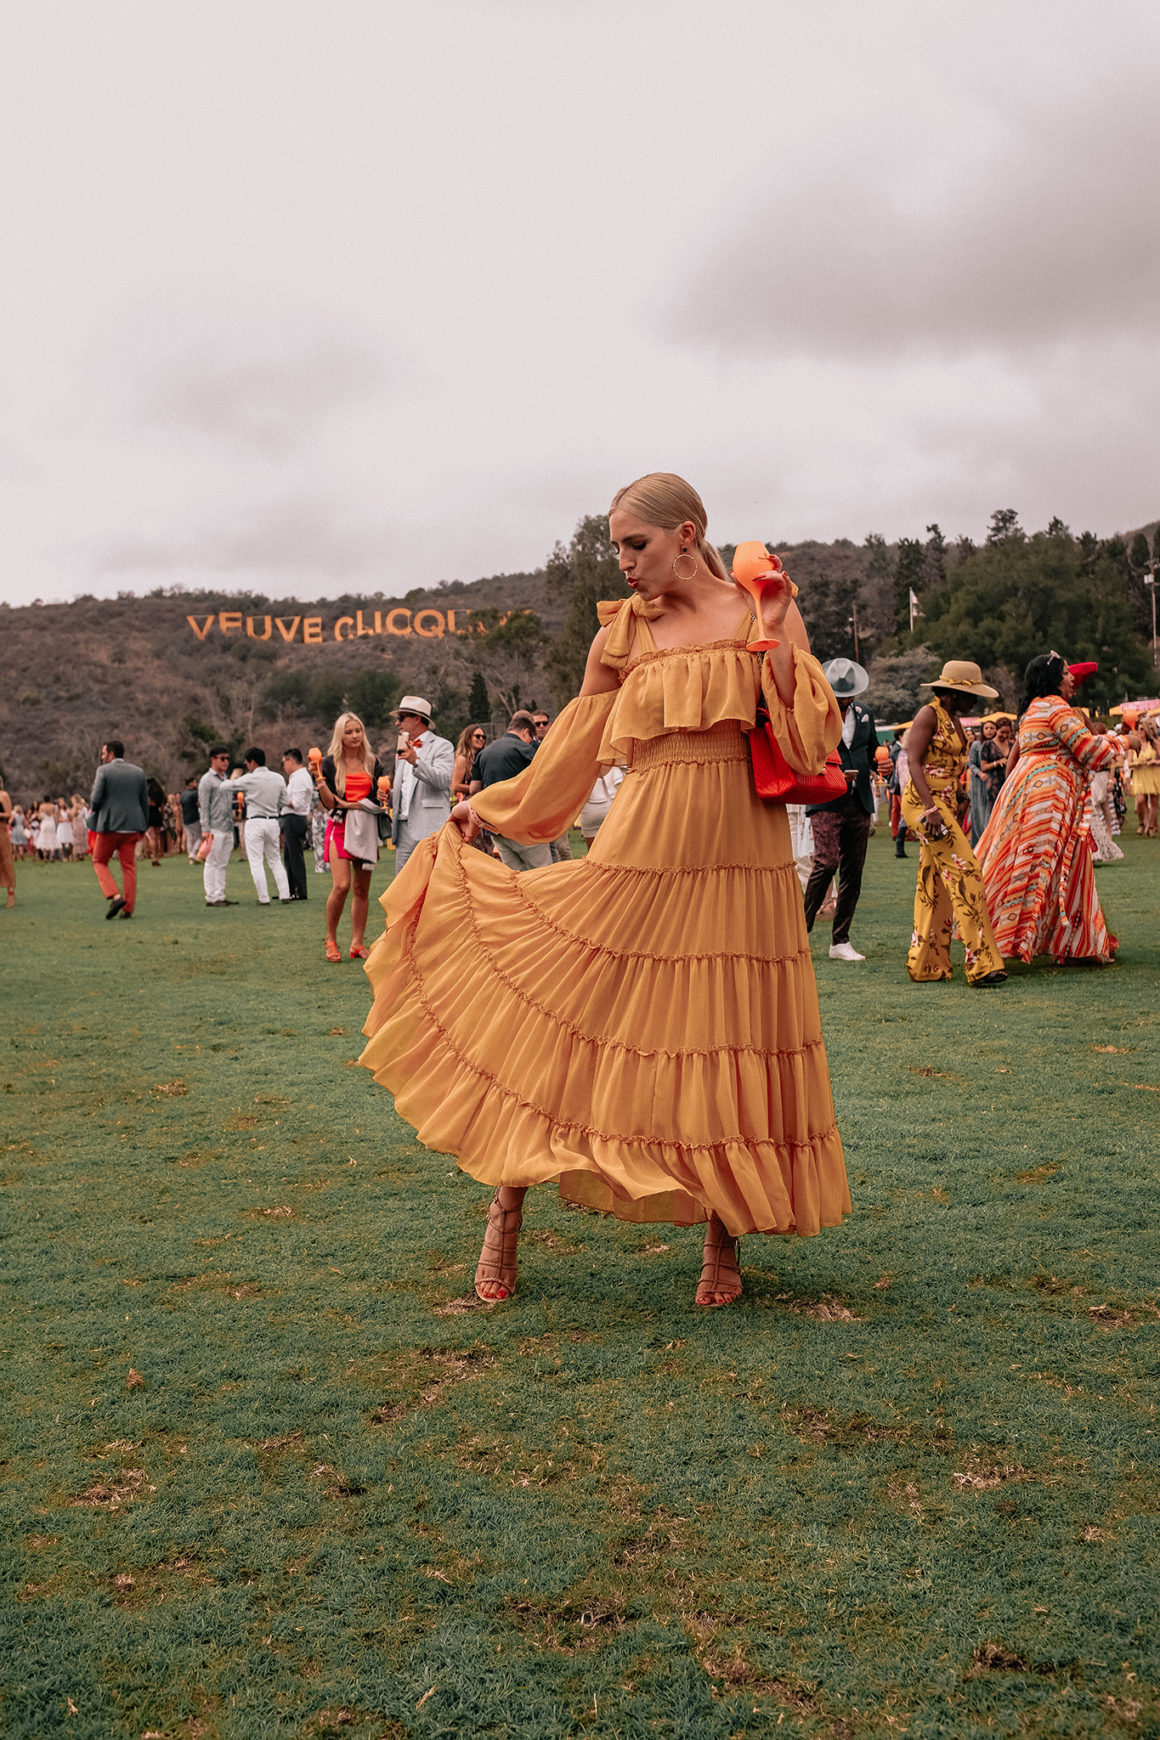 HOW TO DRESS FOR LA'S VEUVE CLICQUOT POLO CLASSIC